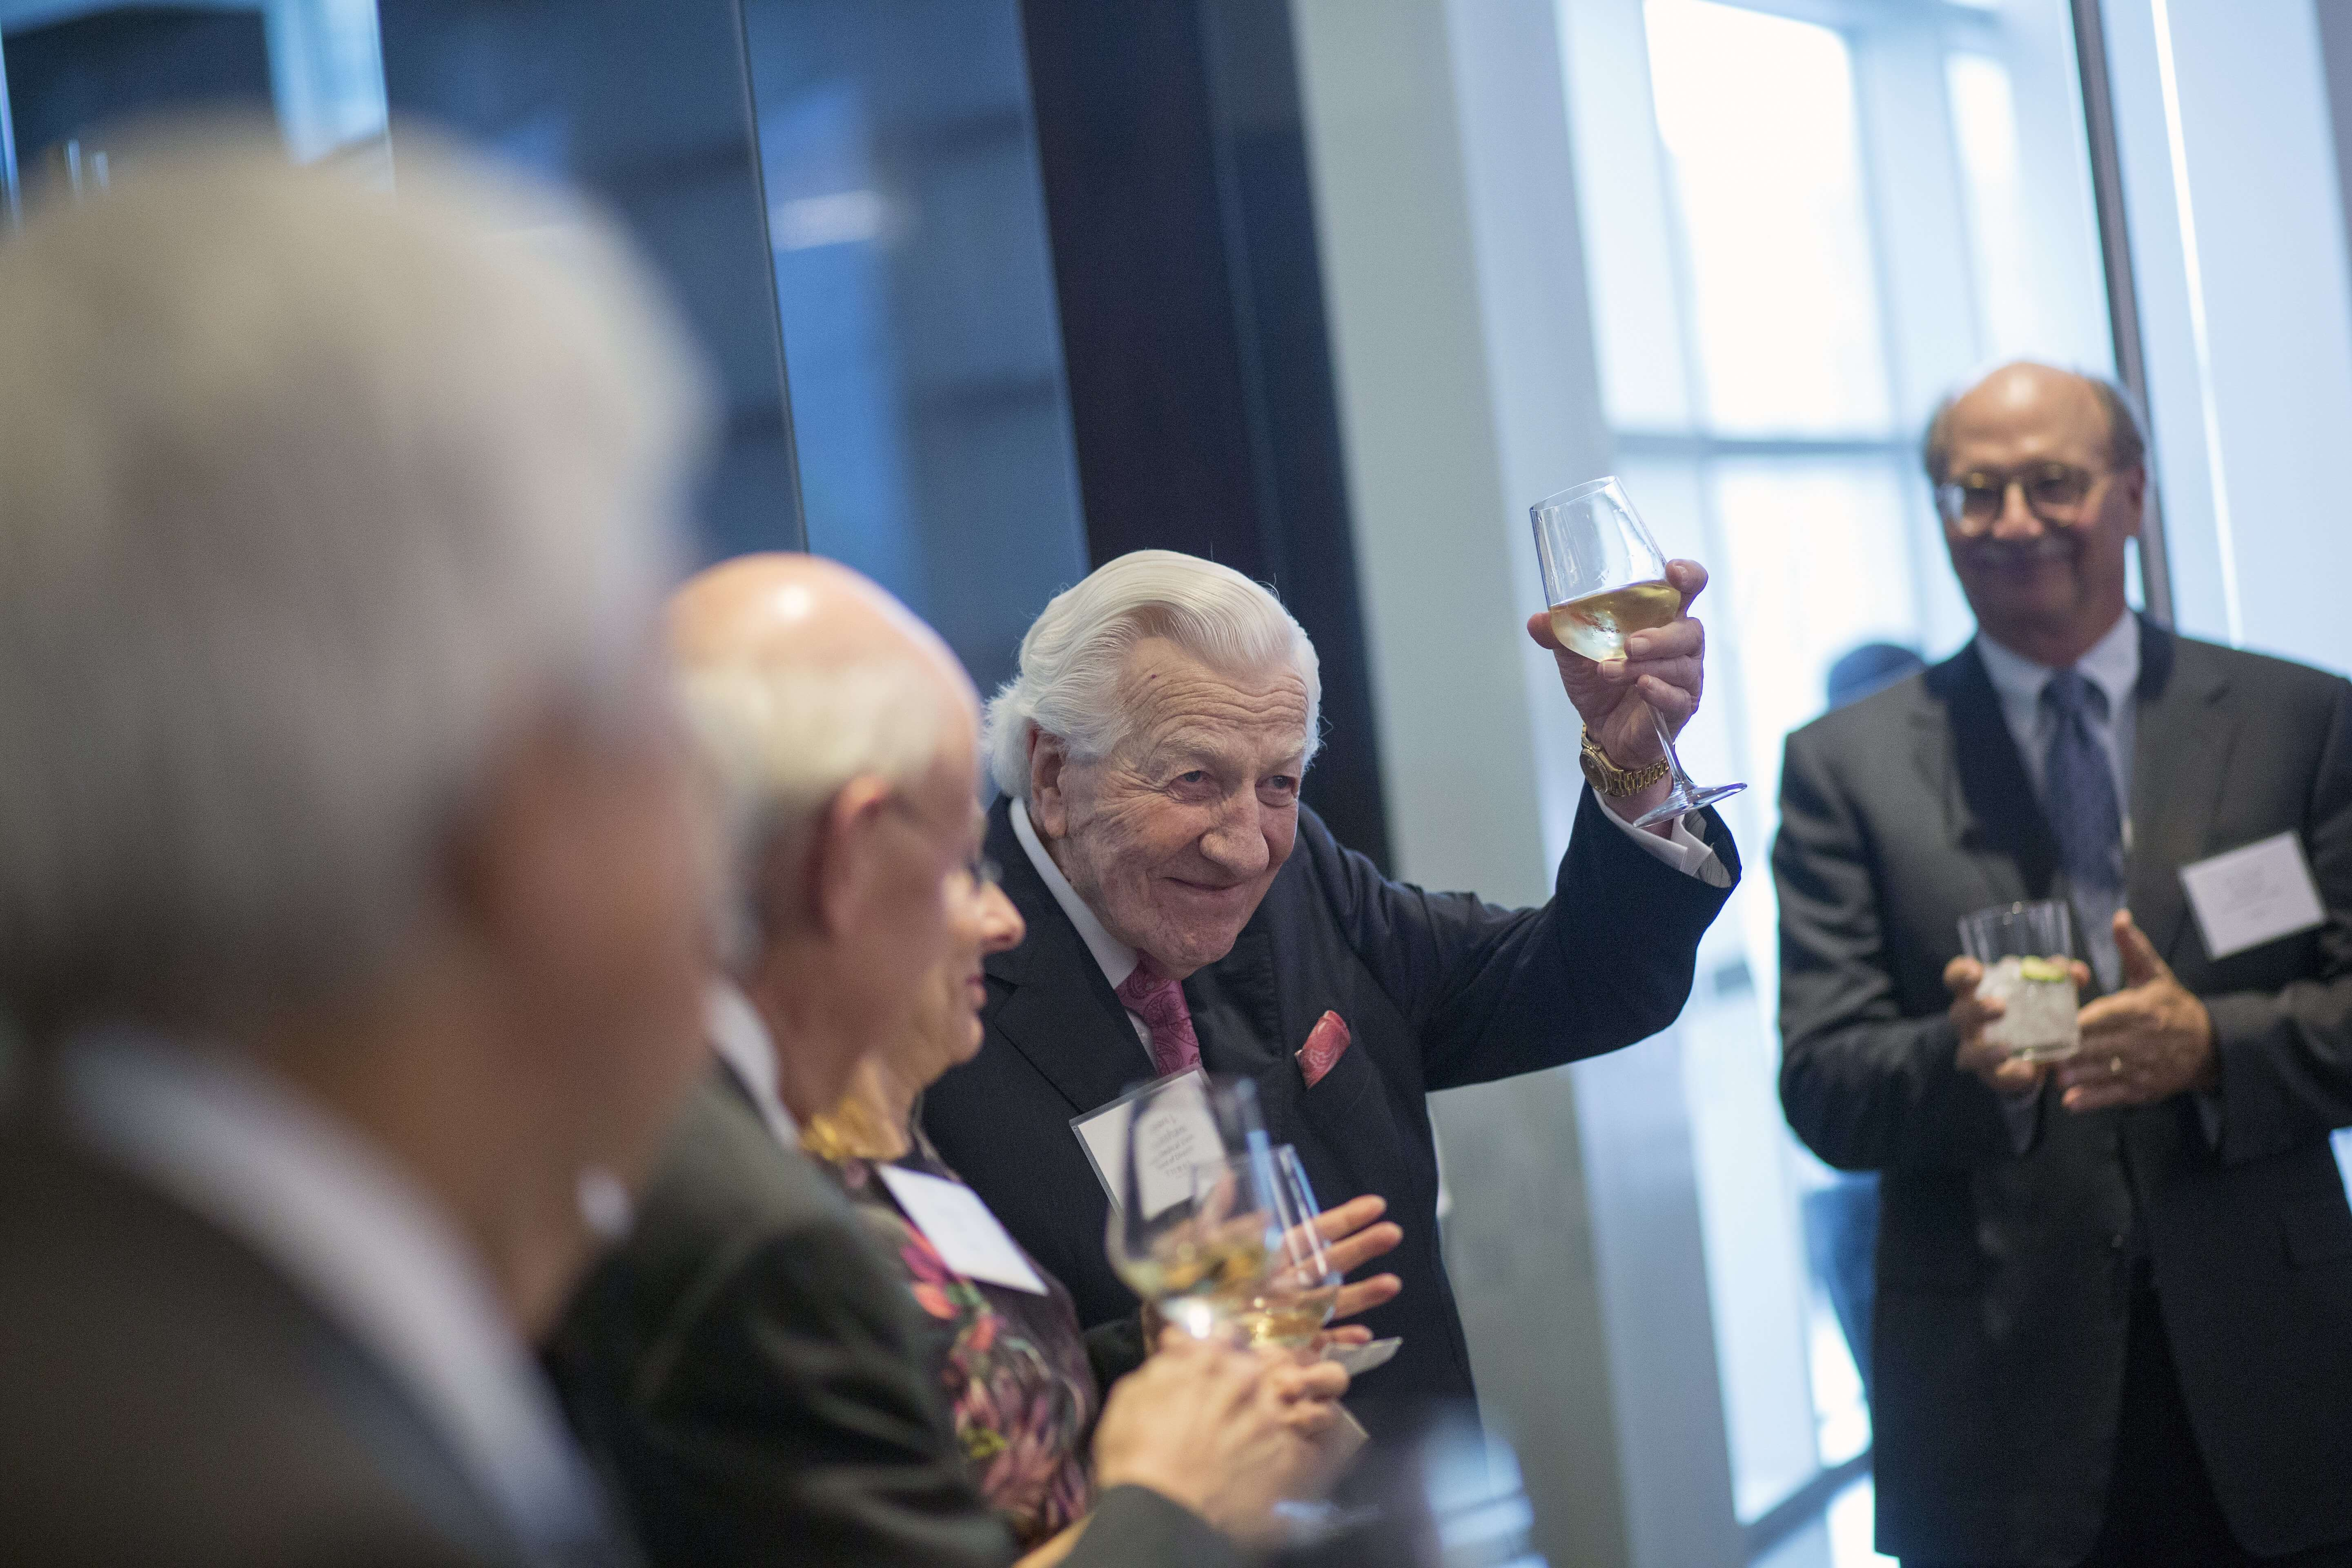 Texas Medical Center Board Member, Robert Cruikshank, toasts guests as he is introduced for the evening.